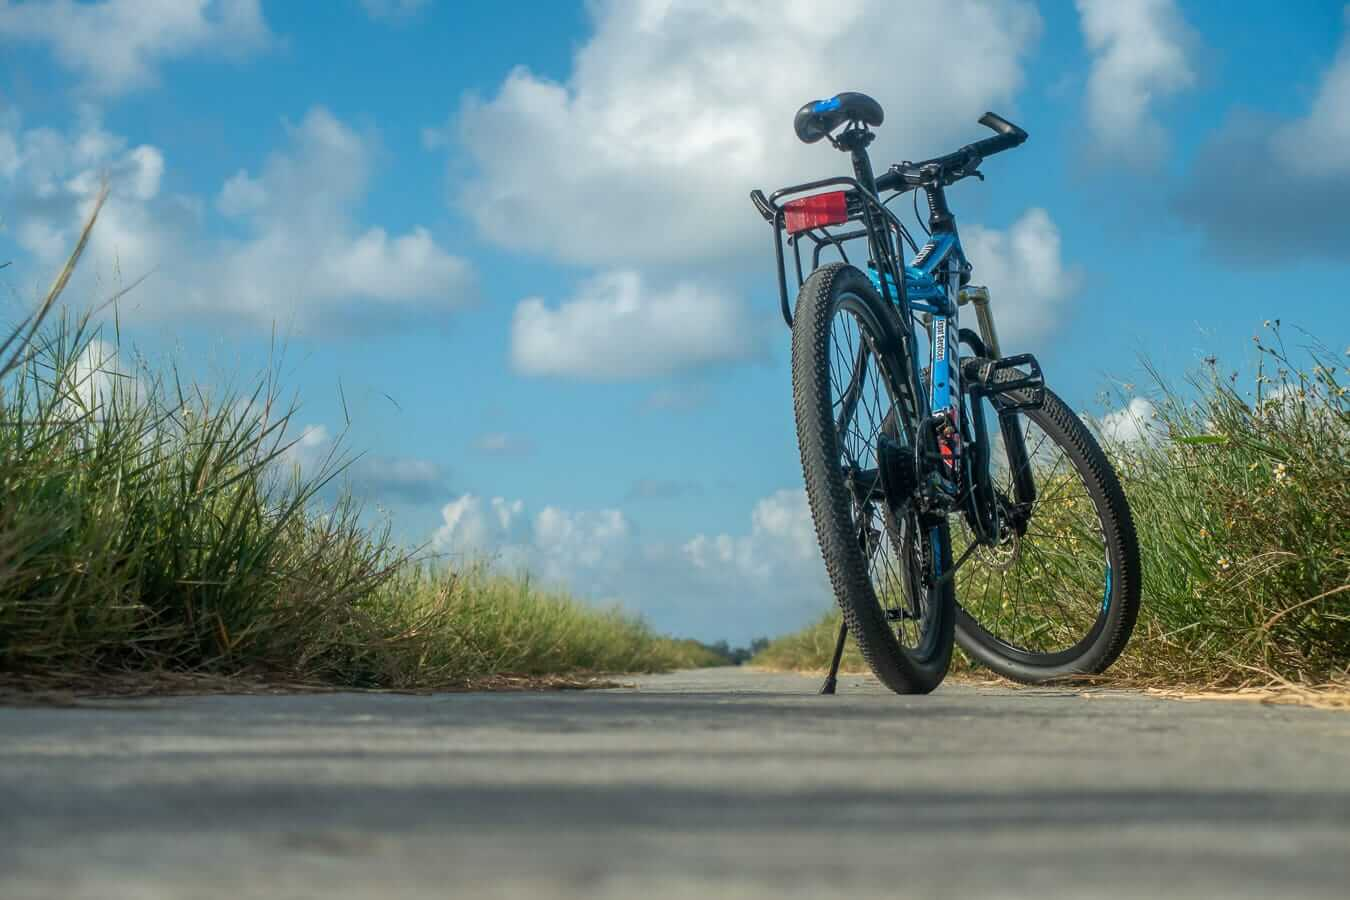 Geared bike: Hoi An cycling